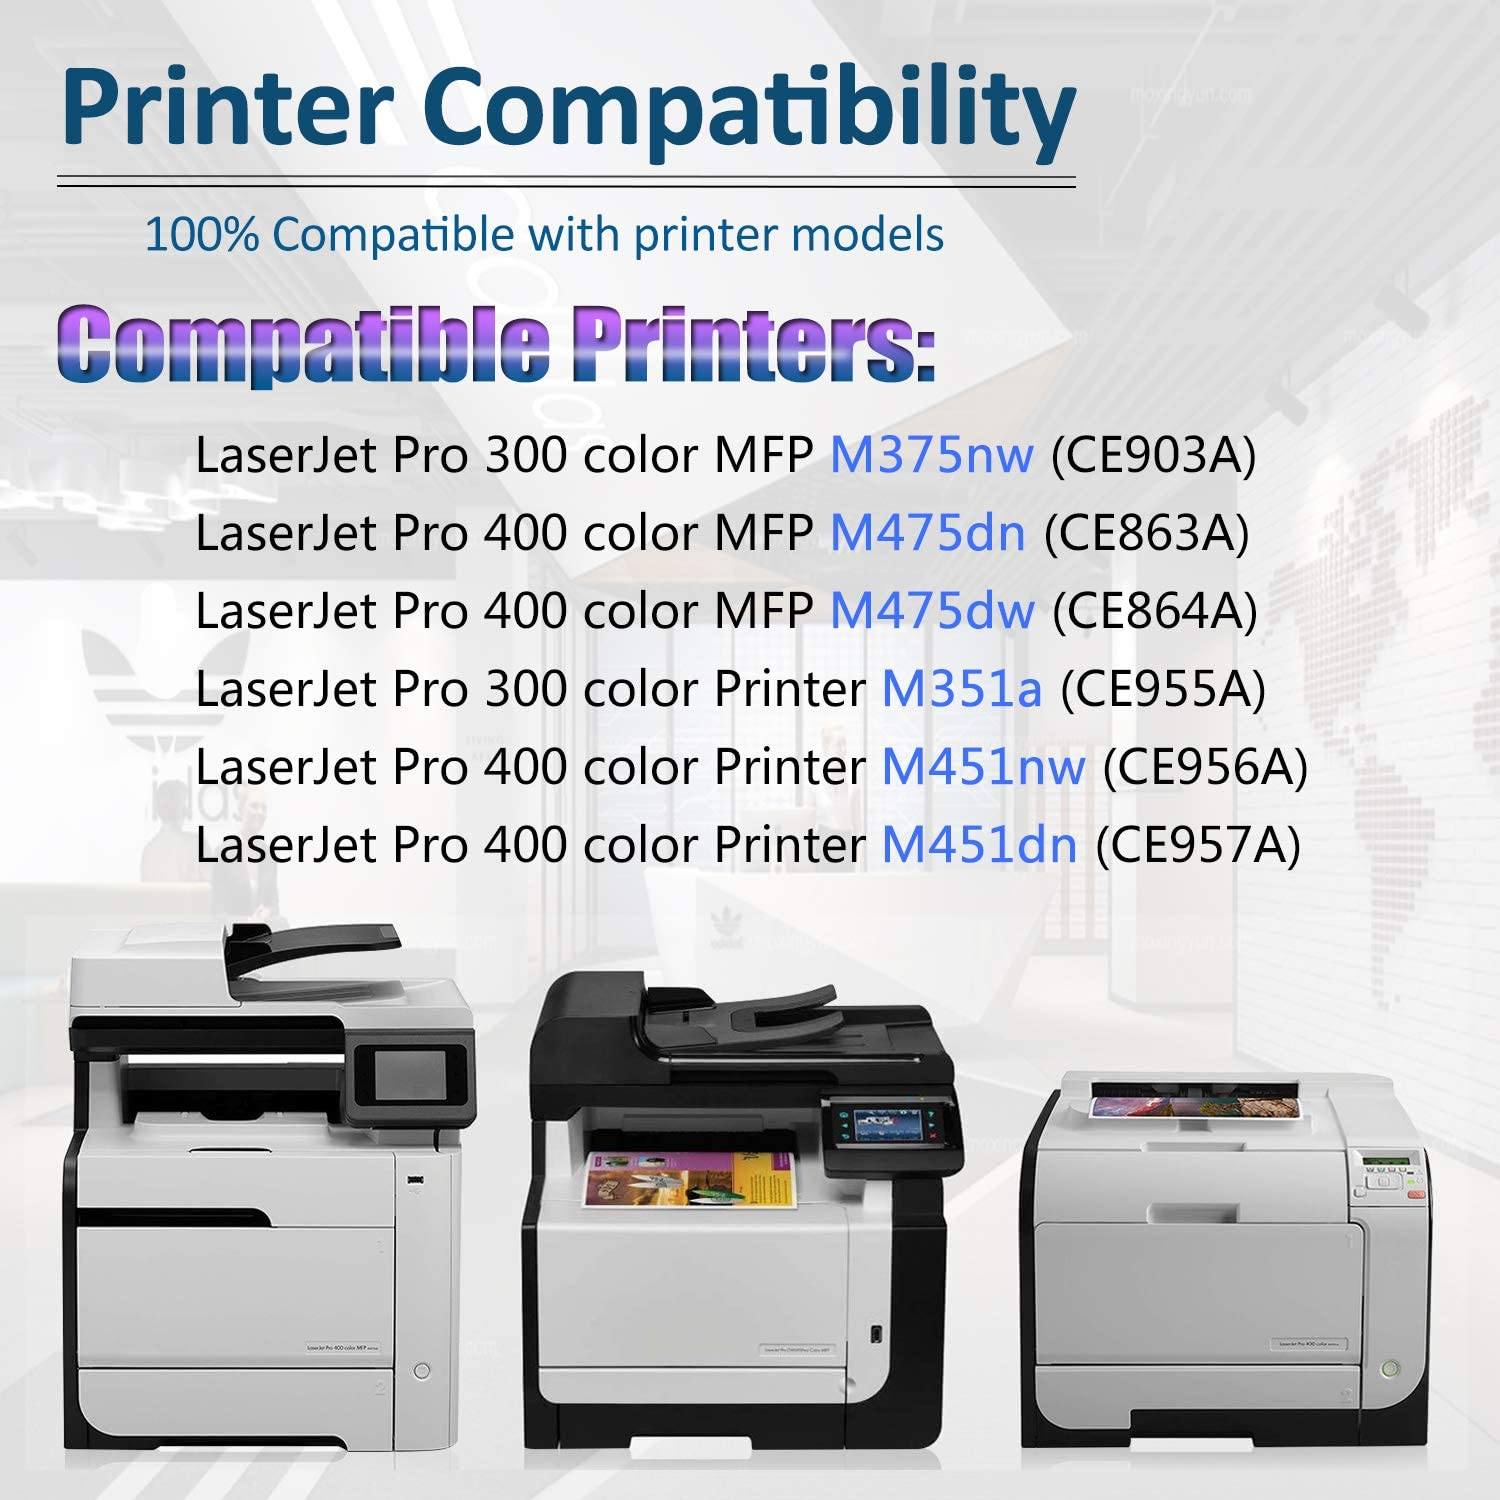 8 Pack 5BK+1C+1Y+1M High Yield Remanufactured MFP M375nw M351a M451nw M451dn M451dw MFP M475dn M475dw Printers Replacement for HP 305X CE410X CE411X CE412X CE413X Toner